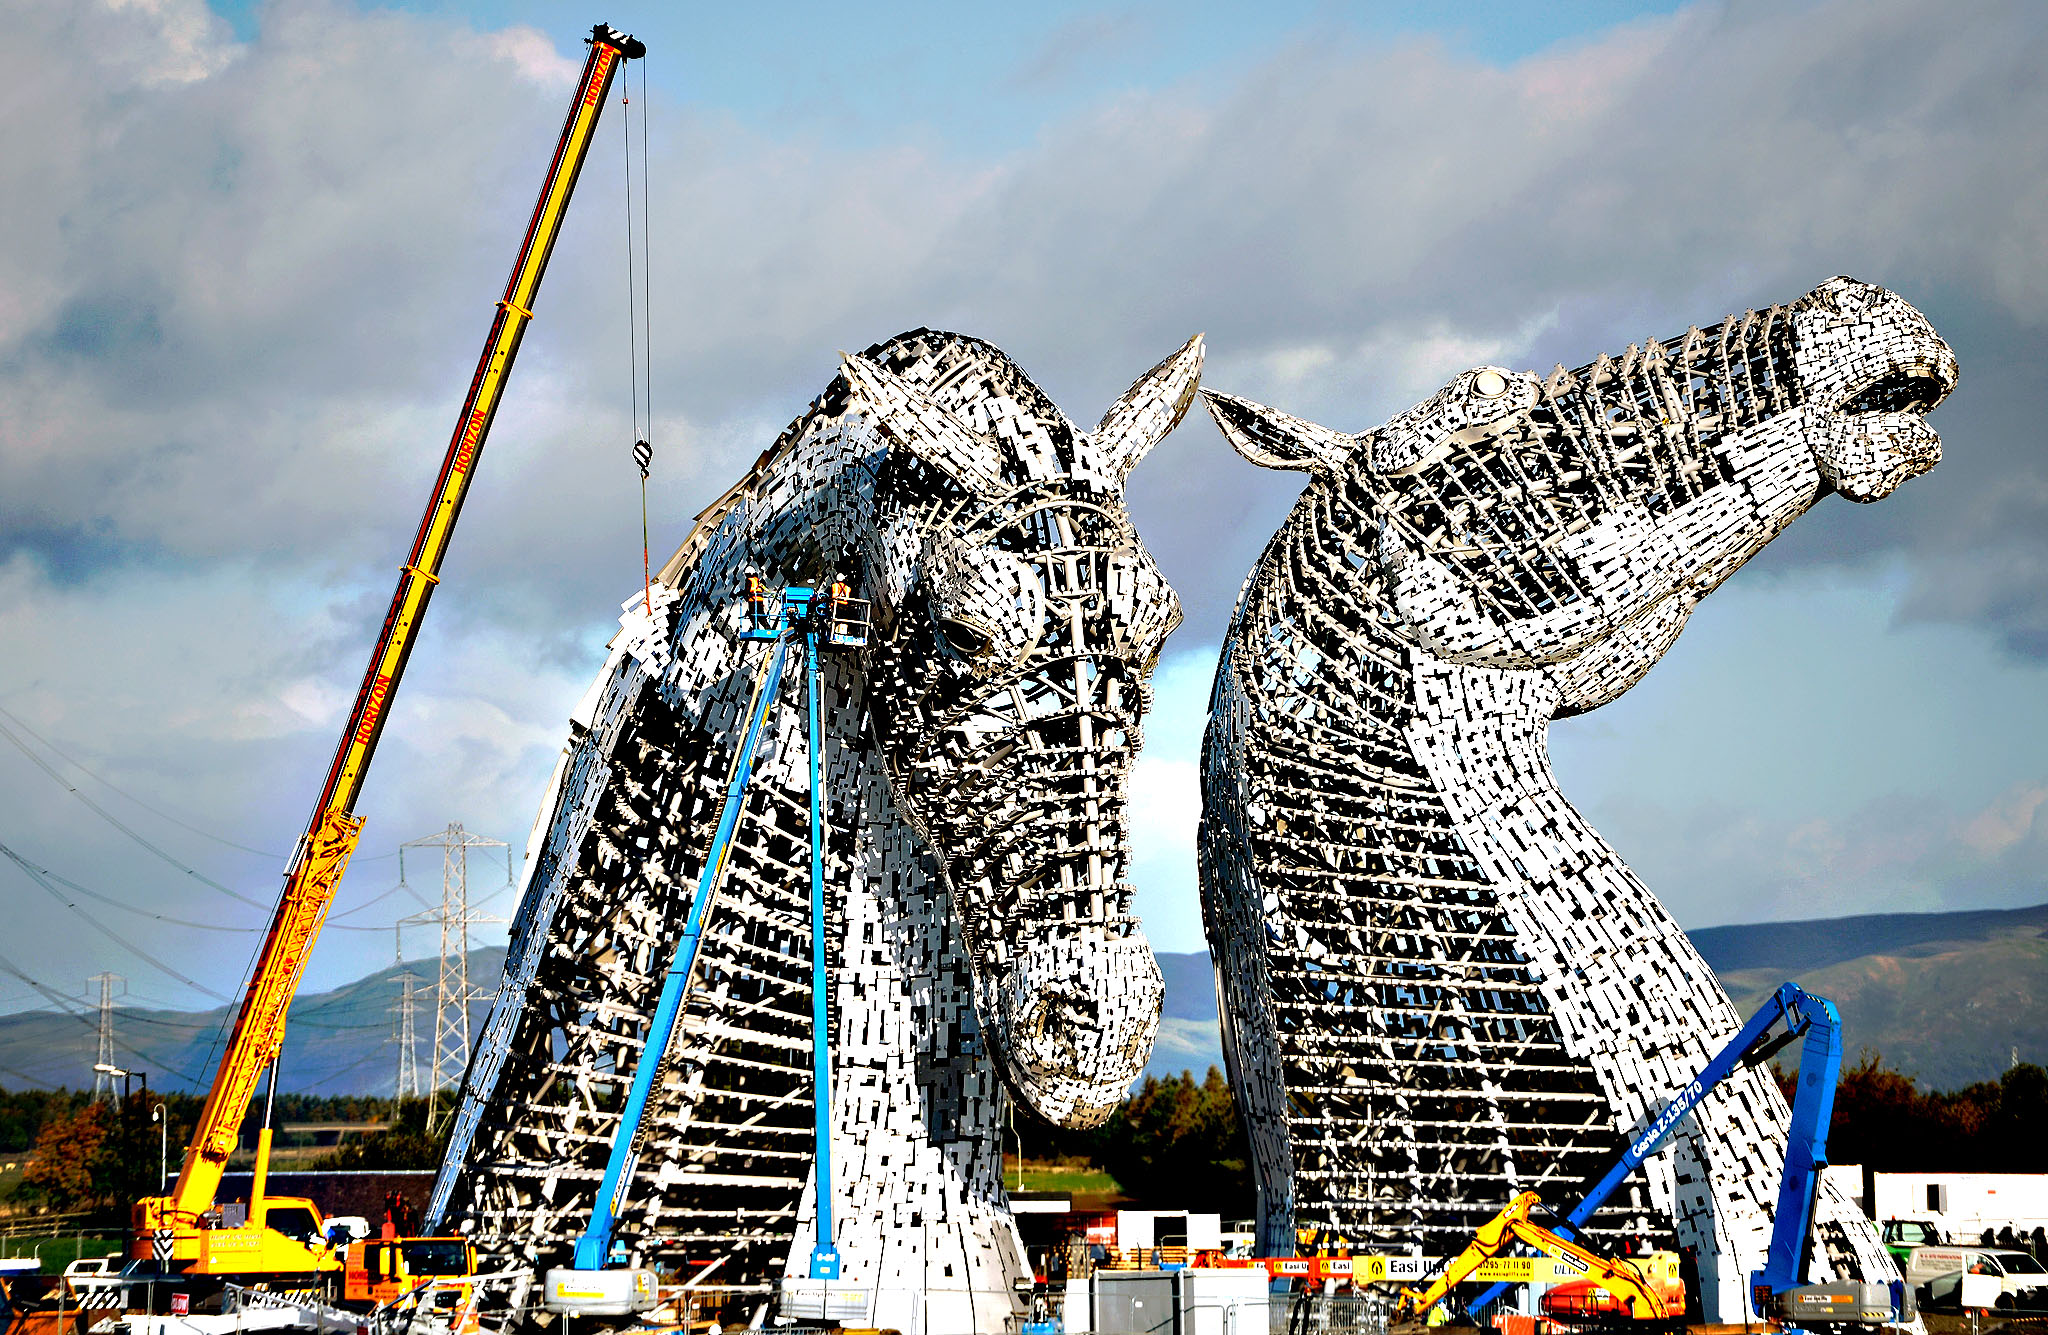 Work continues on The Kelpies sculptures at the eastern entrance to the Forth and Clyde canal on October 10, 2013 in Falkirk, Scotland. The two Kelpie heads are positioned at a specially constructed canal lock and basin part of the Helix project, each weighing 300 tonnes and standing 100 feet tall. The structure was designed by sculptor Andy Scott as a monument to horse powered heritage across Central Scotland.